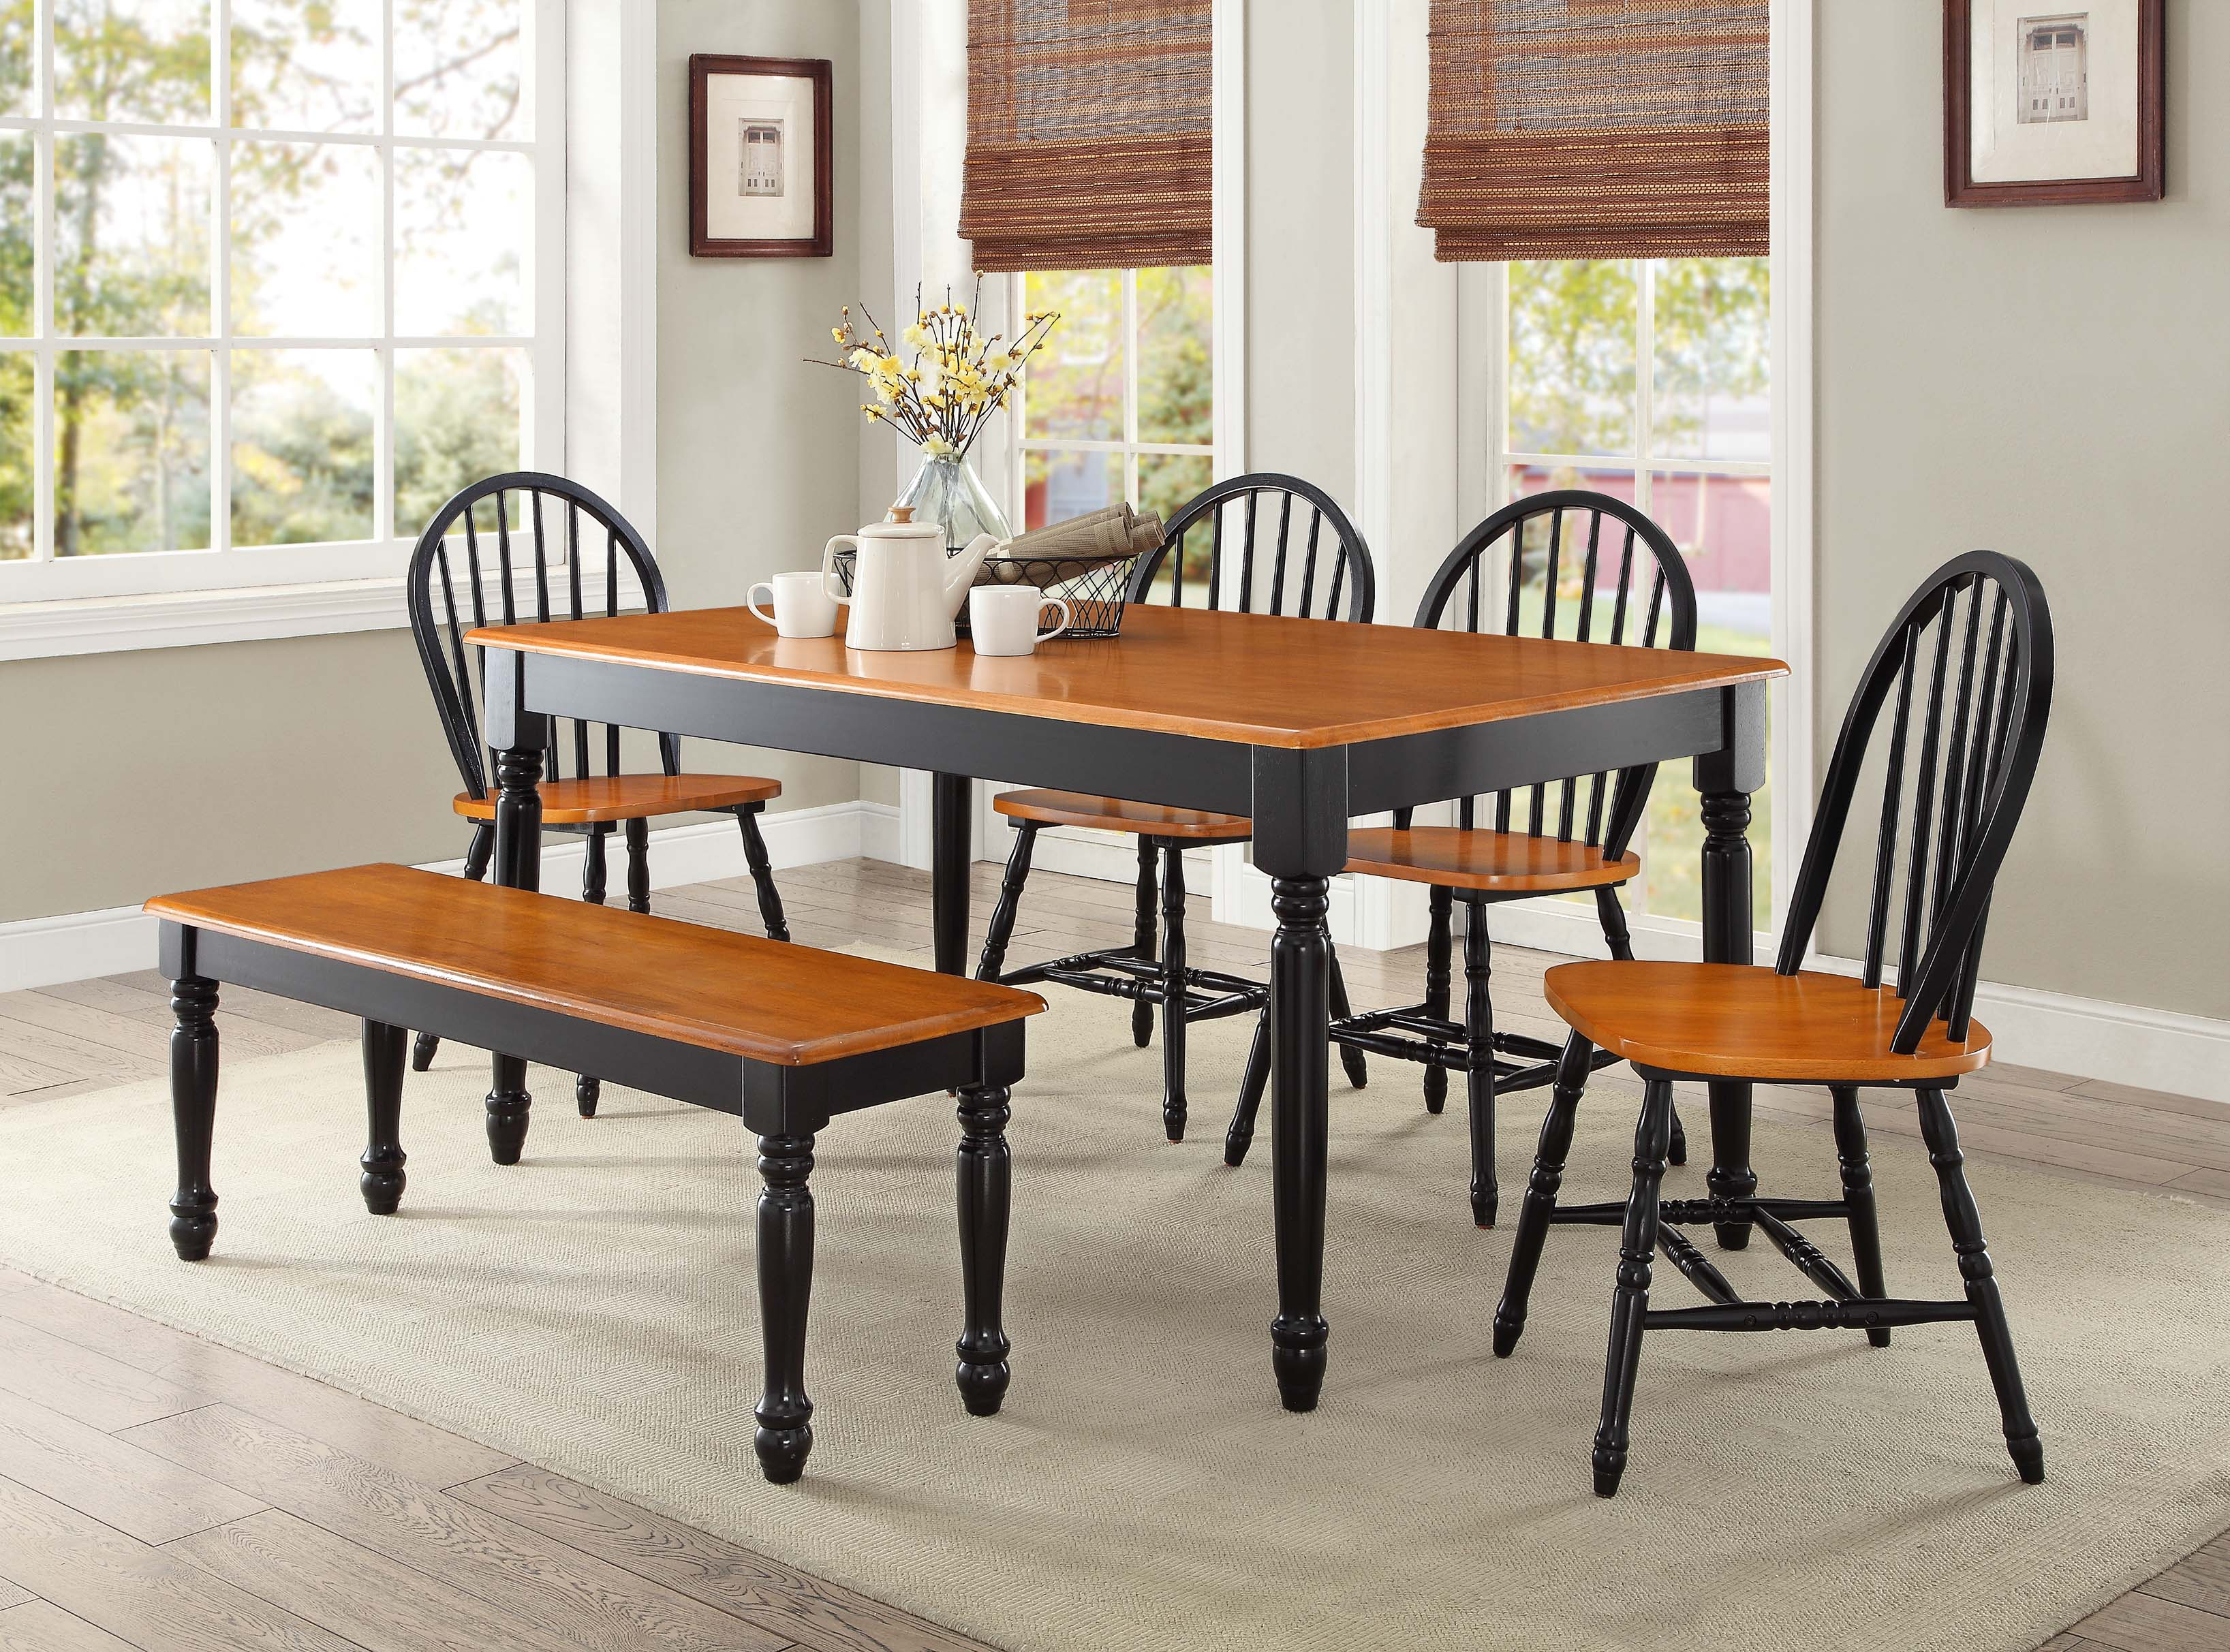 Cozy small dining room table and chairs kitchen u0026 dining furniture - walmart.com gunjmwn